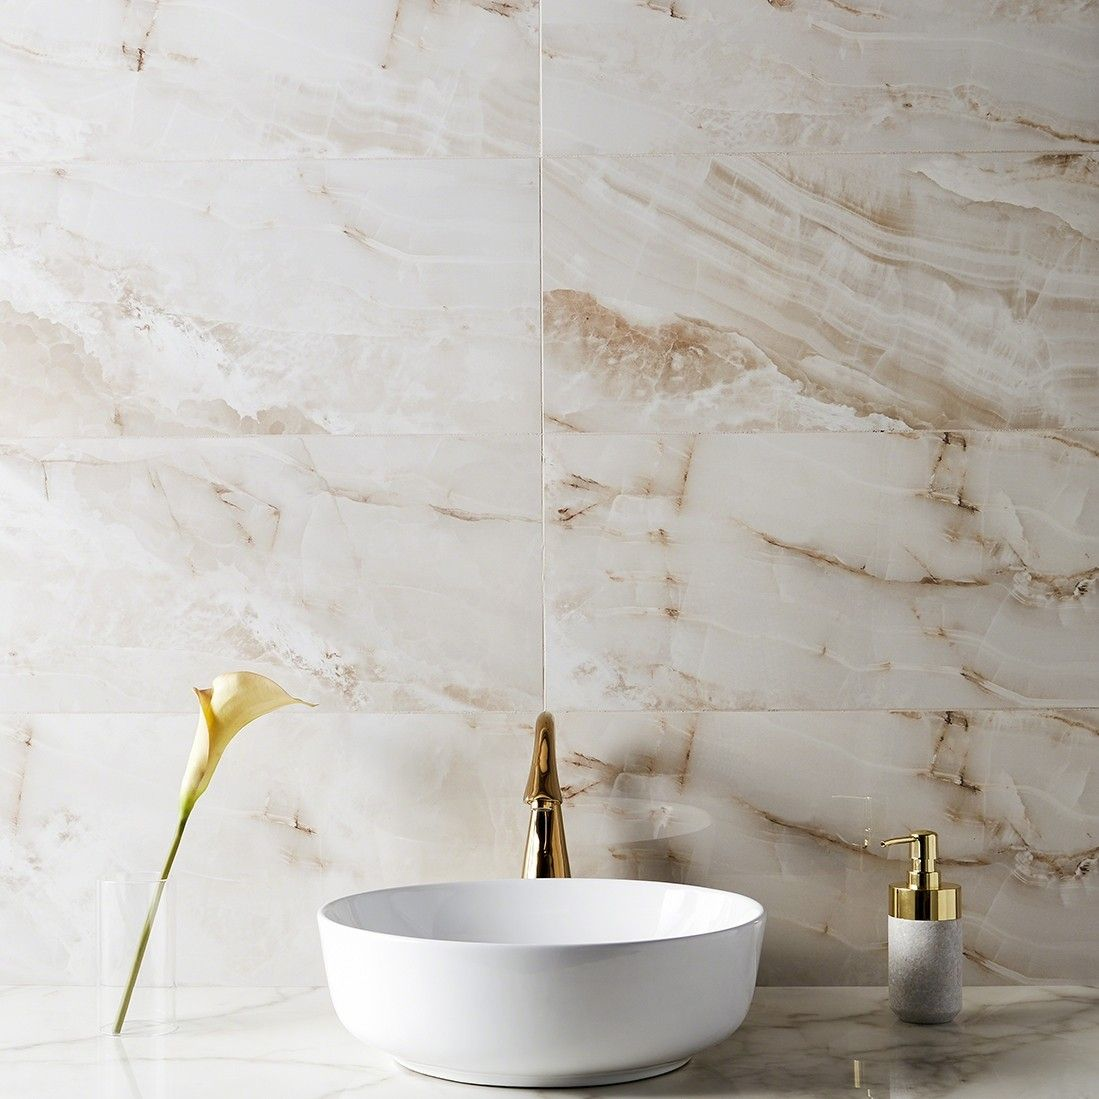 Basic Onyx Aurelia 12x24 Polished Porcelain Tile Polished Porcelain Tiles Porcelain Flooring Porcelain Tile